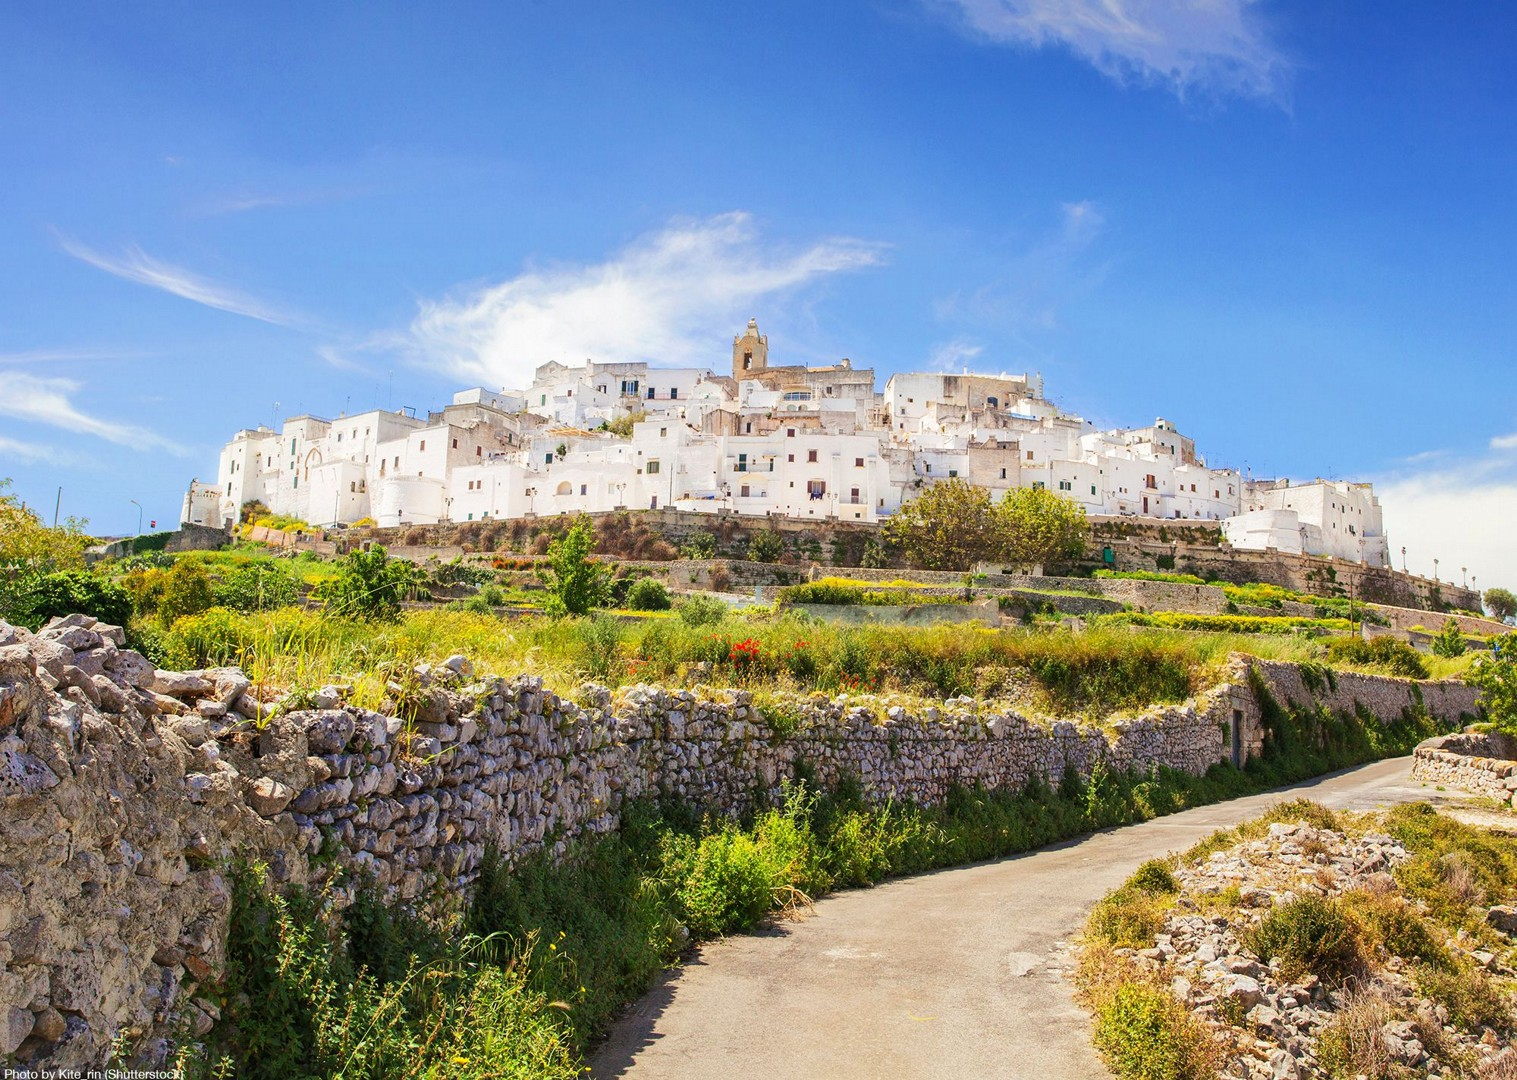 shutterstock_204778273  By Kite_rin.jpg - Italy - Puglia - Guided Leisure Cycling Holiday - Leisure Cycling